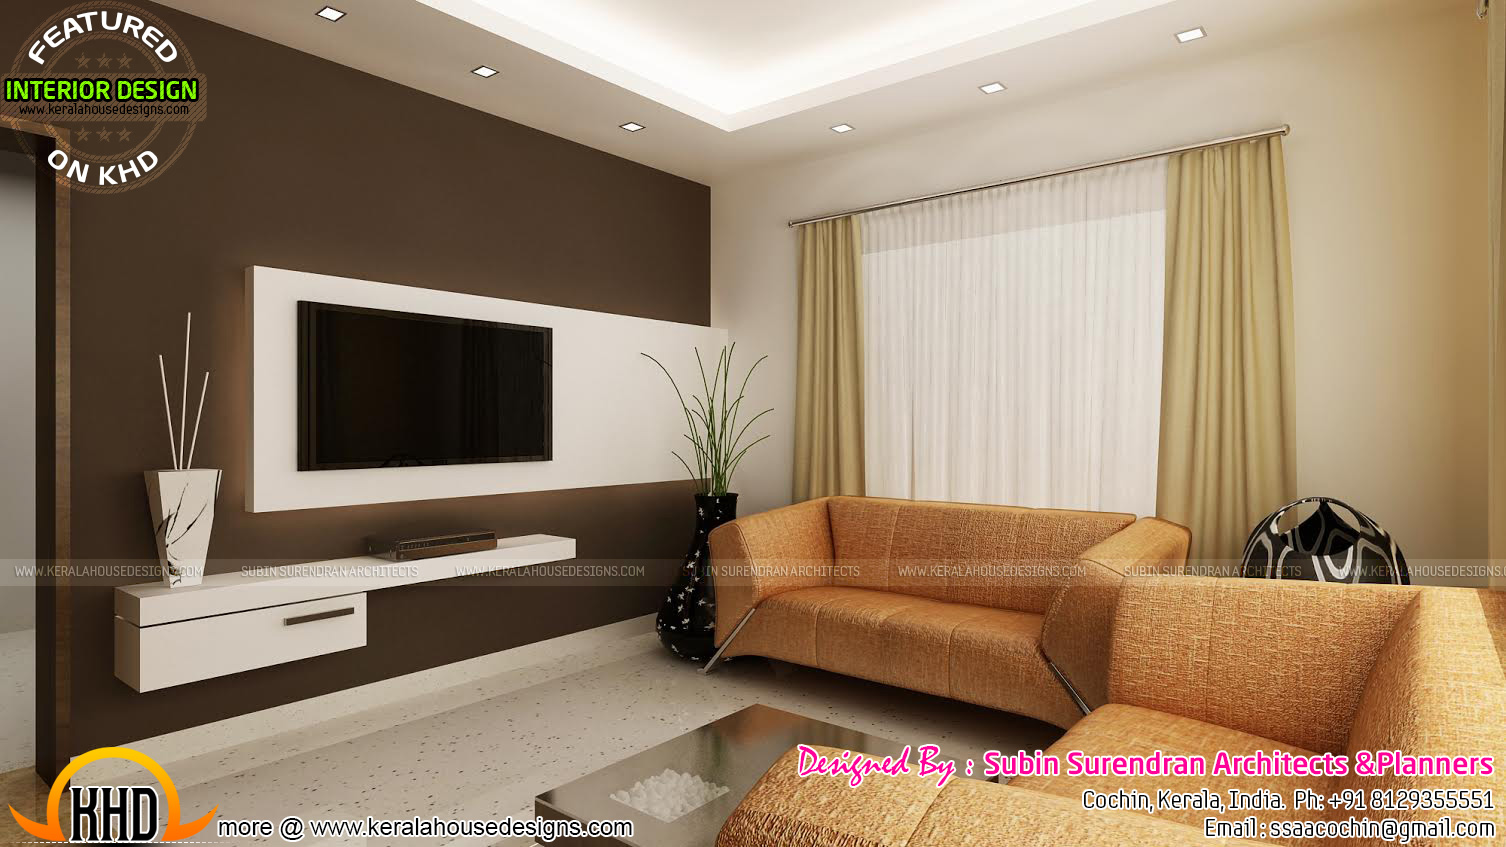 Living rooms modern kitchen interiors in kerala kerala for Room interior design ideas